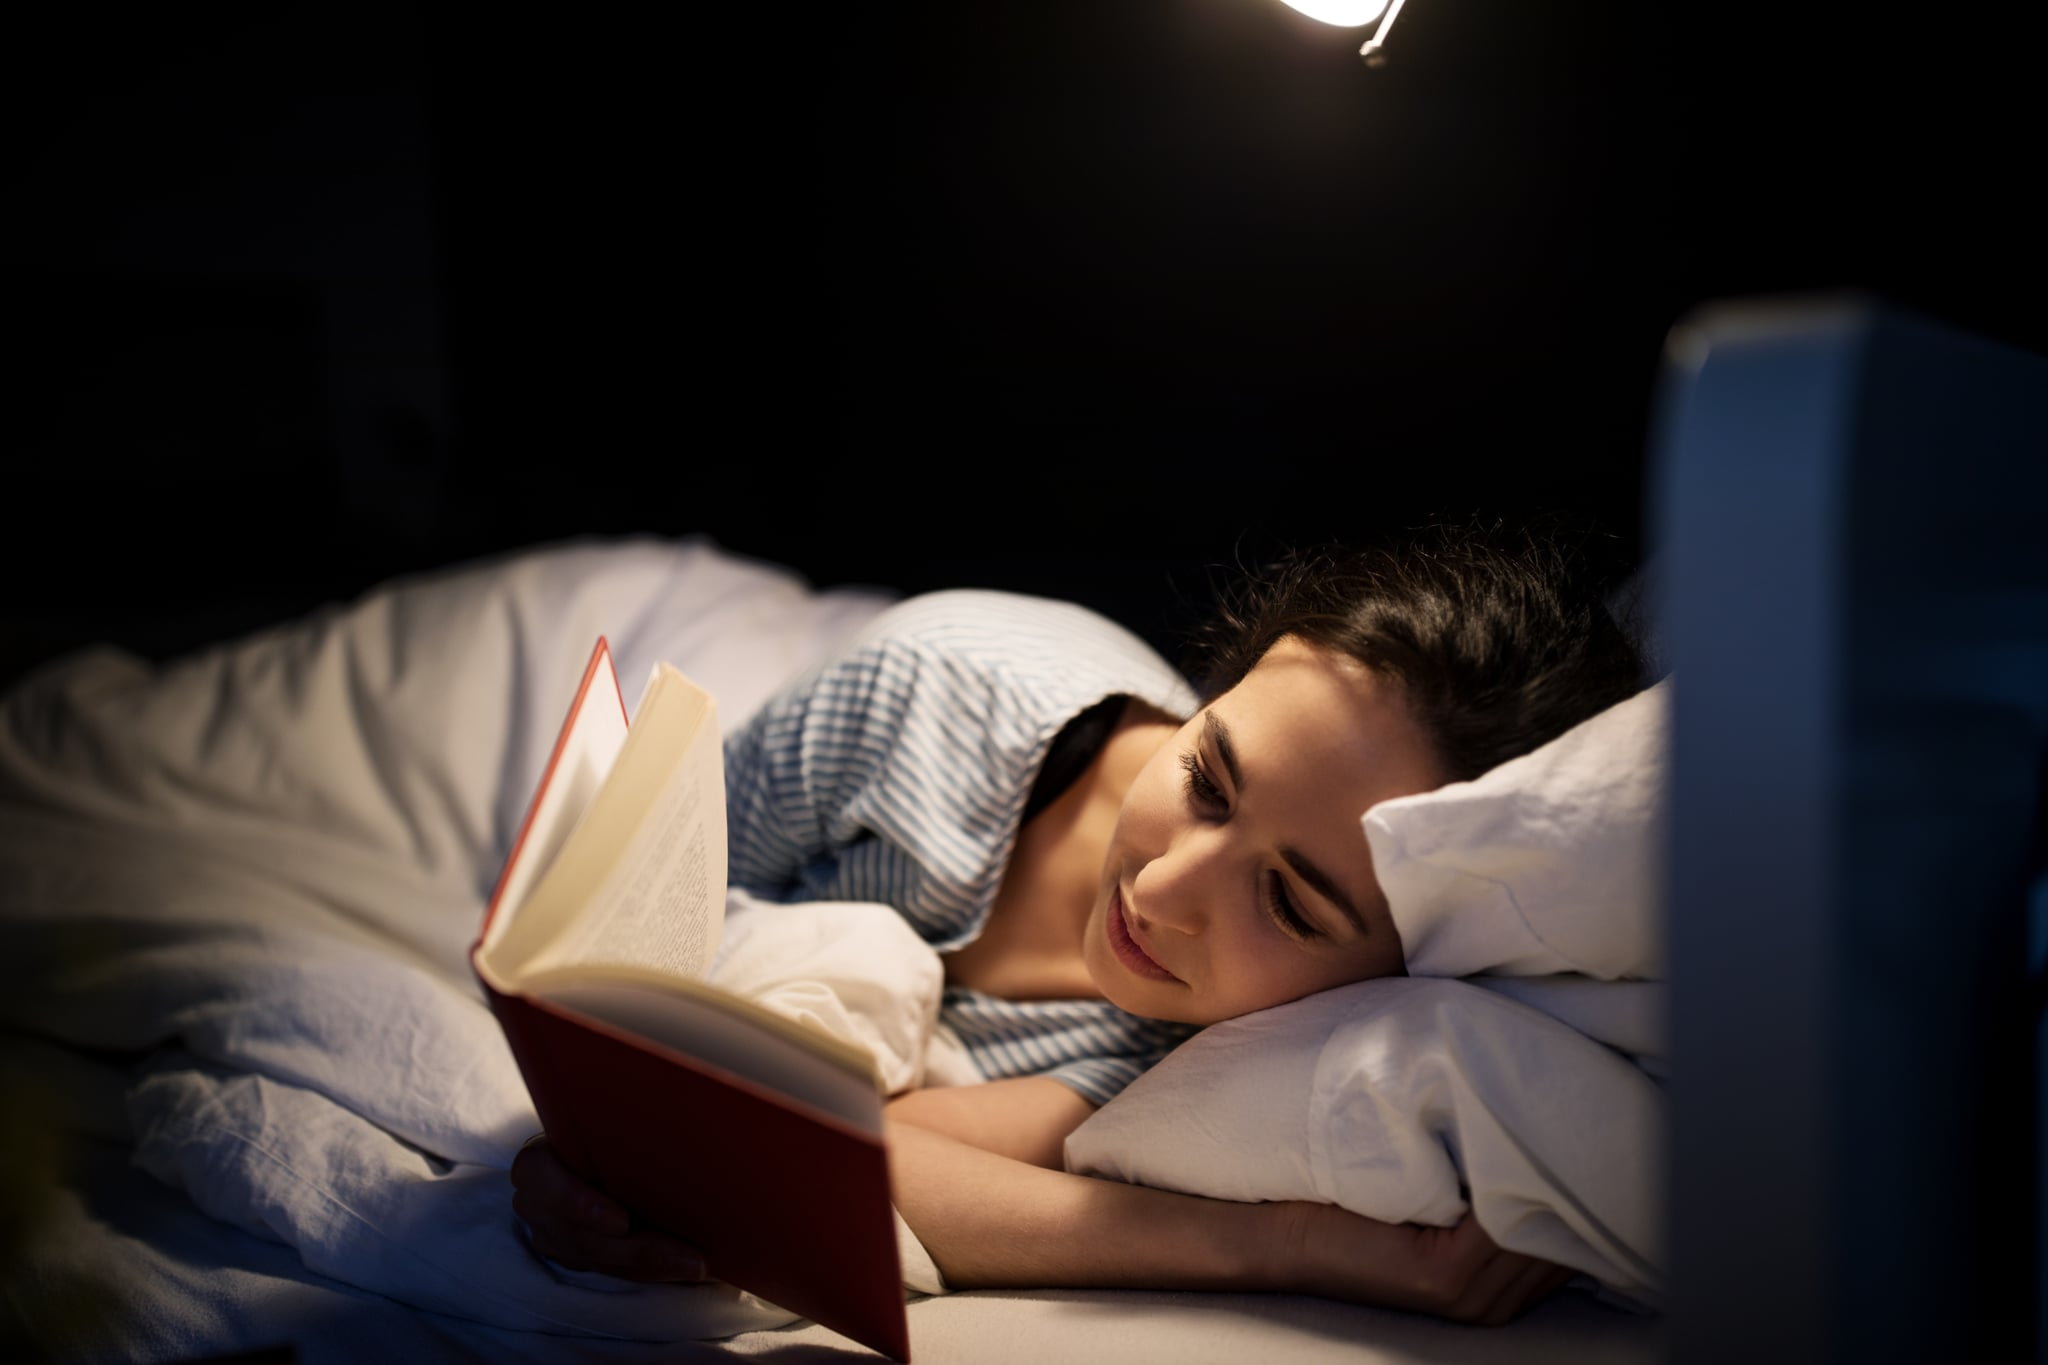 Young woman lying in her bed reading a book at night